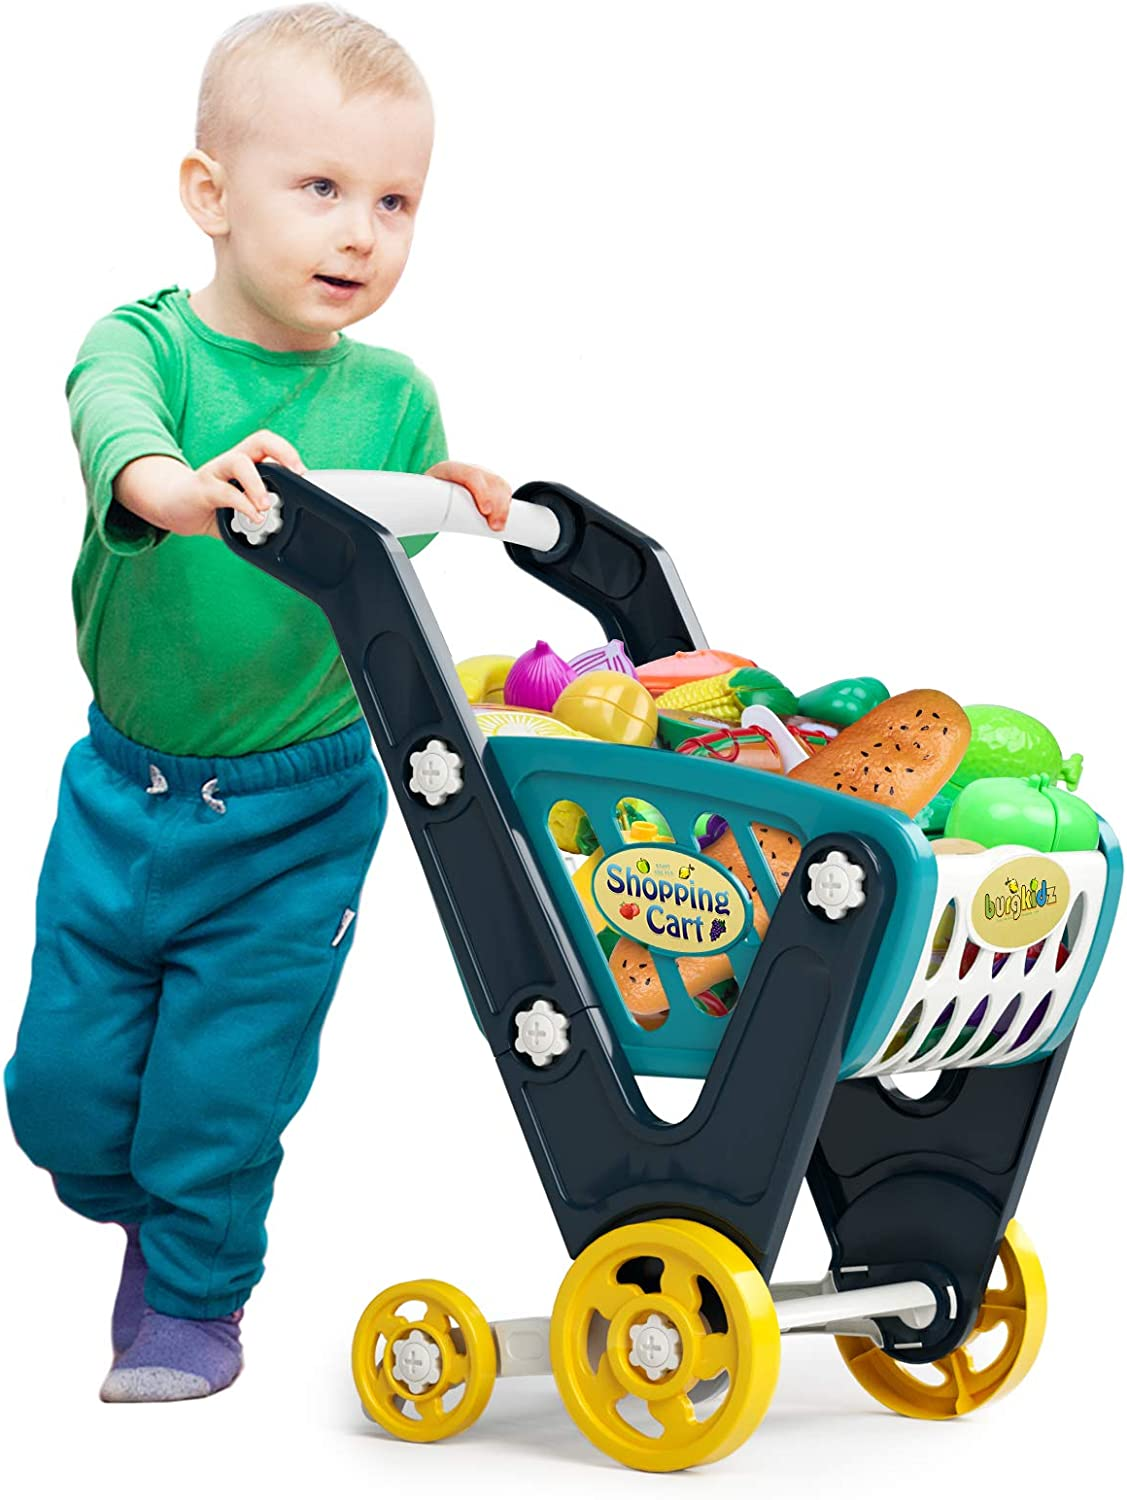 burgkidz Shopping Cart for Kids, Groceries Wagons for Toddlers,